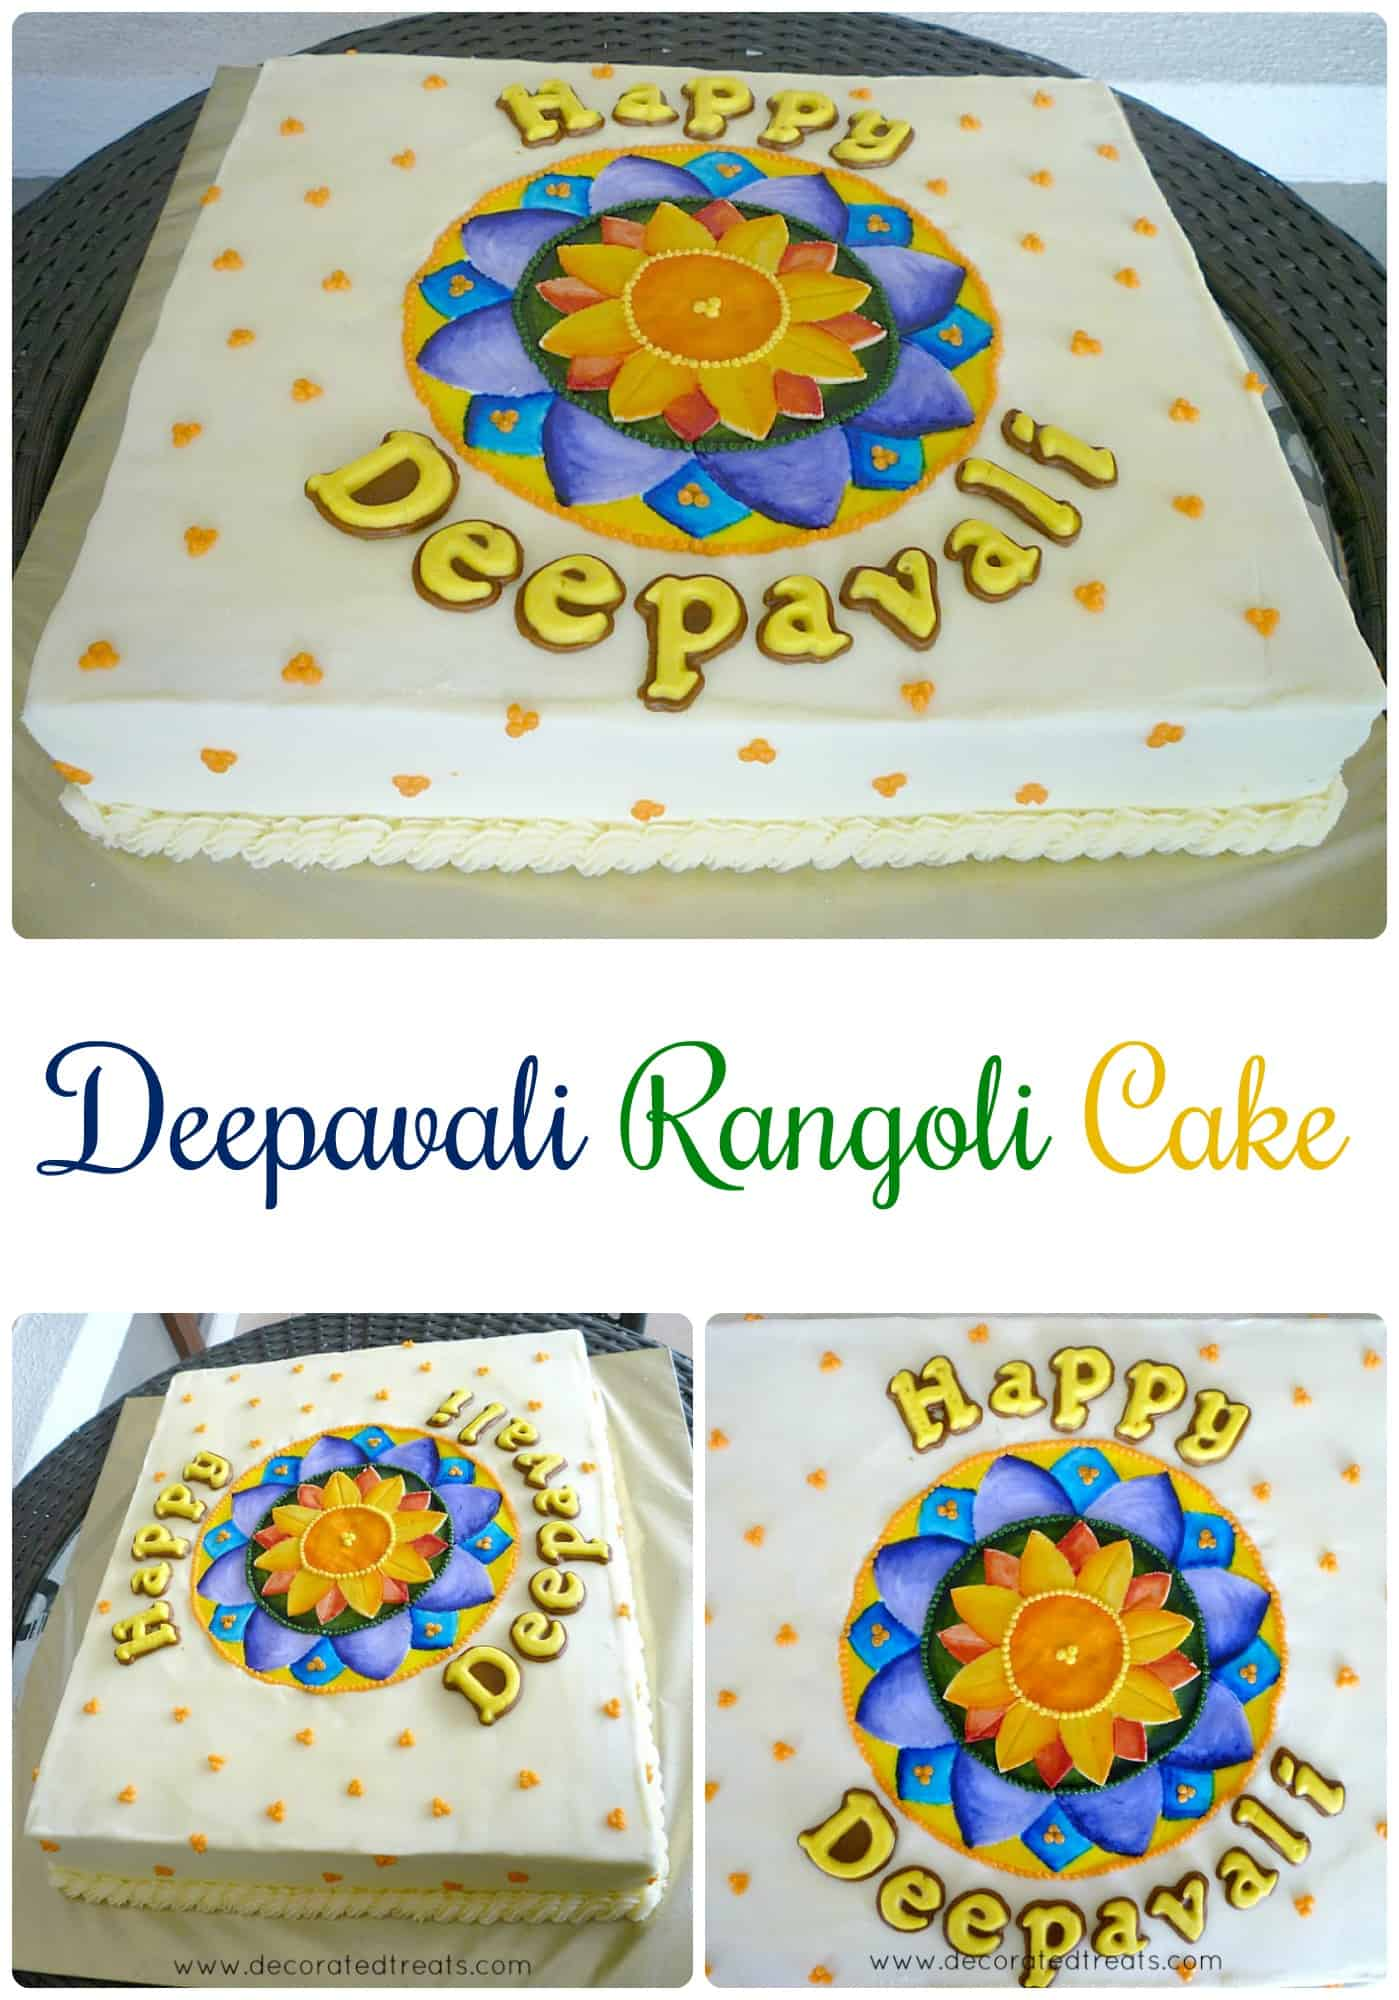 A rectangle cake with Rangoli design in blue and orange